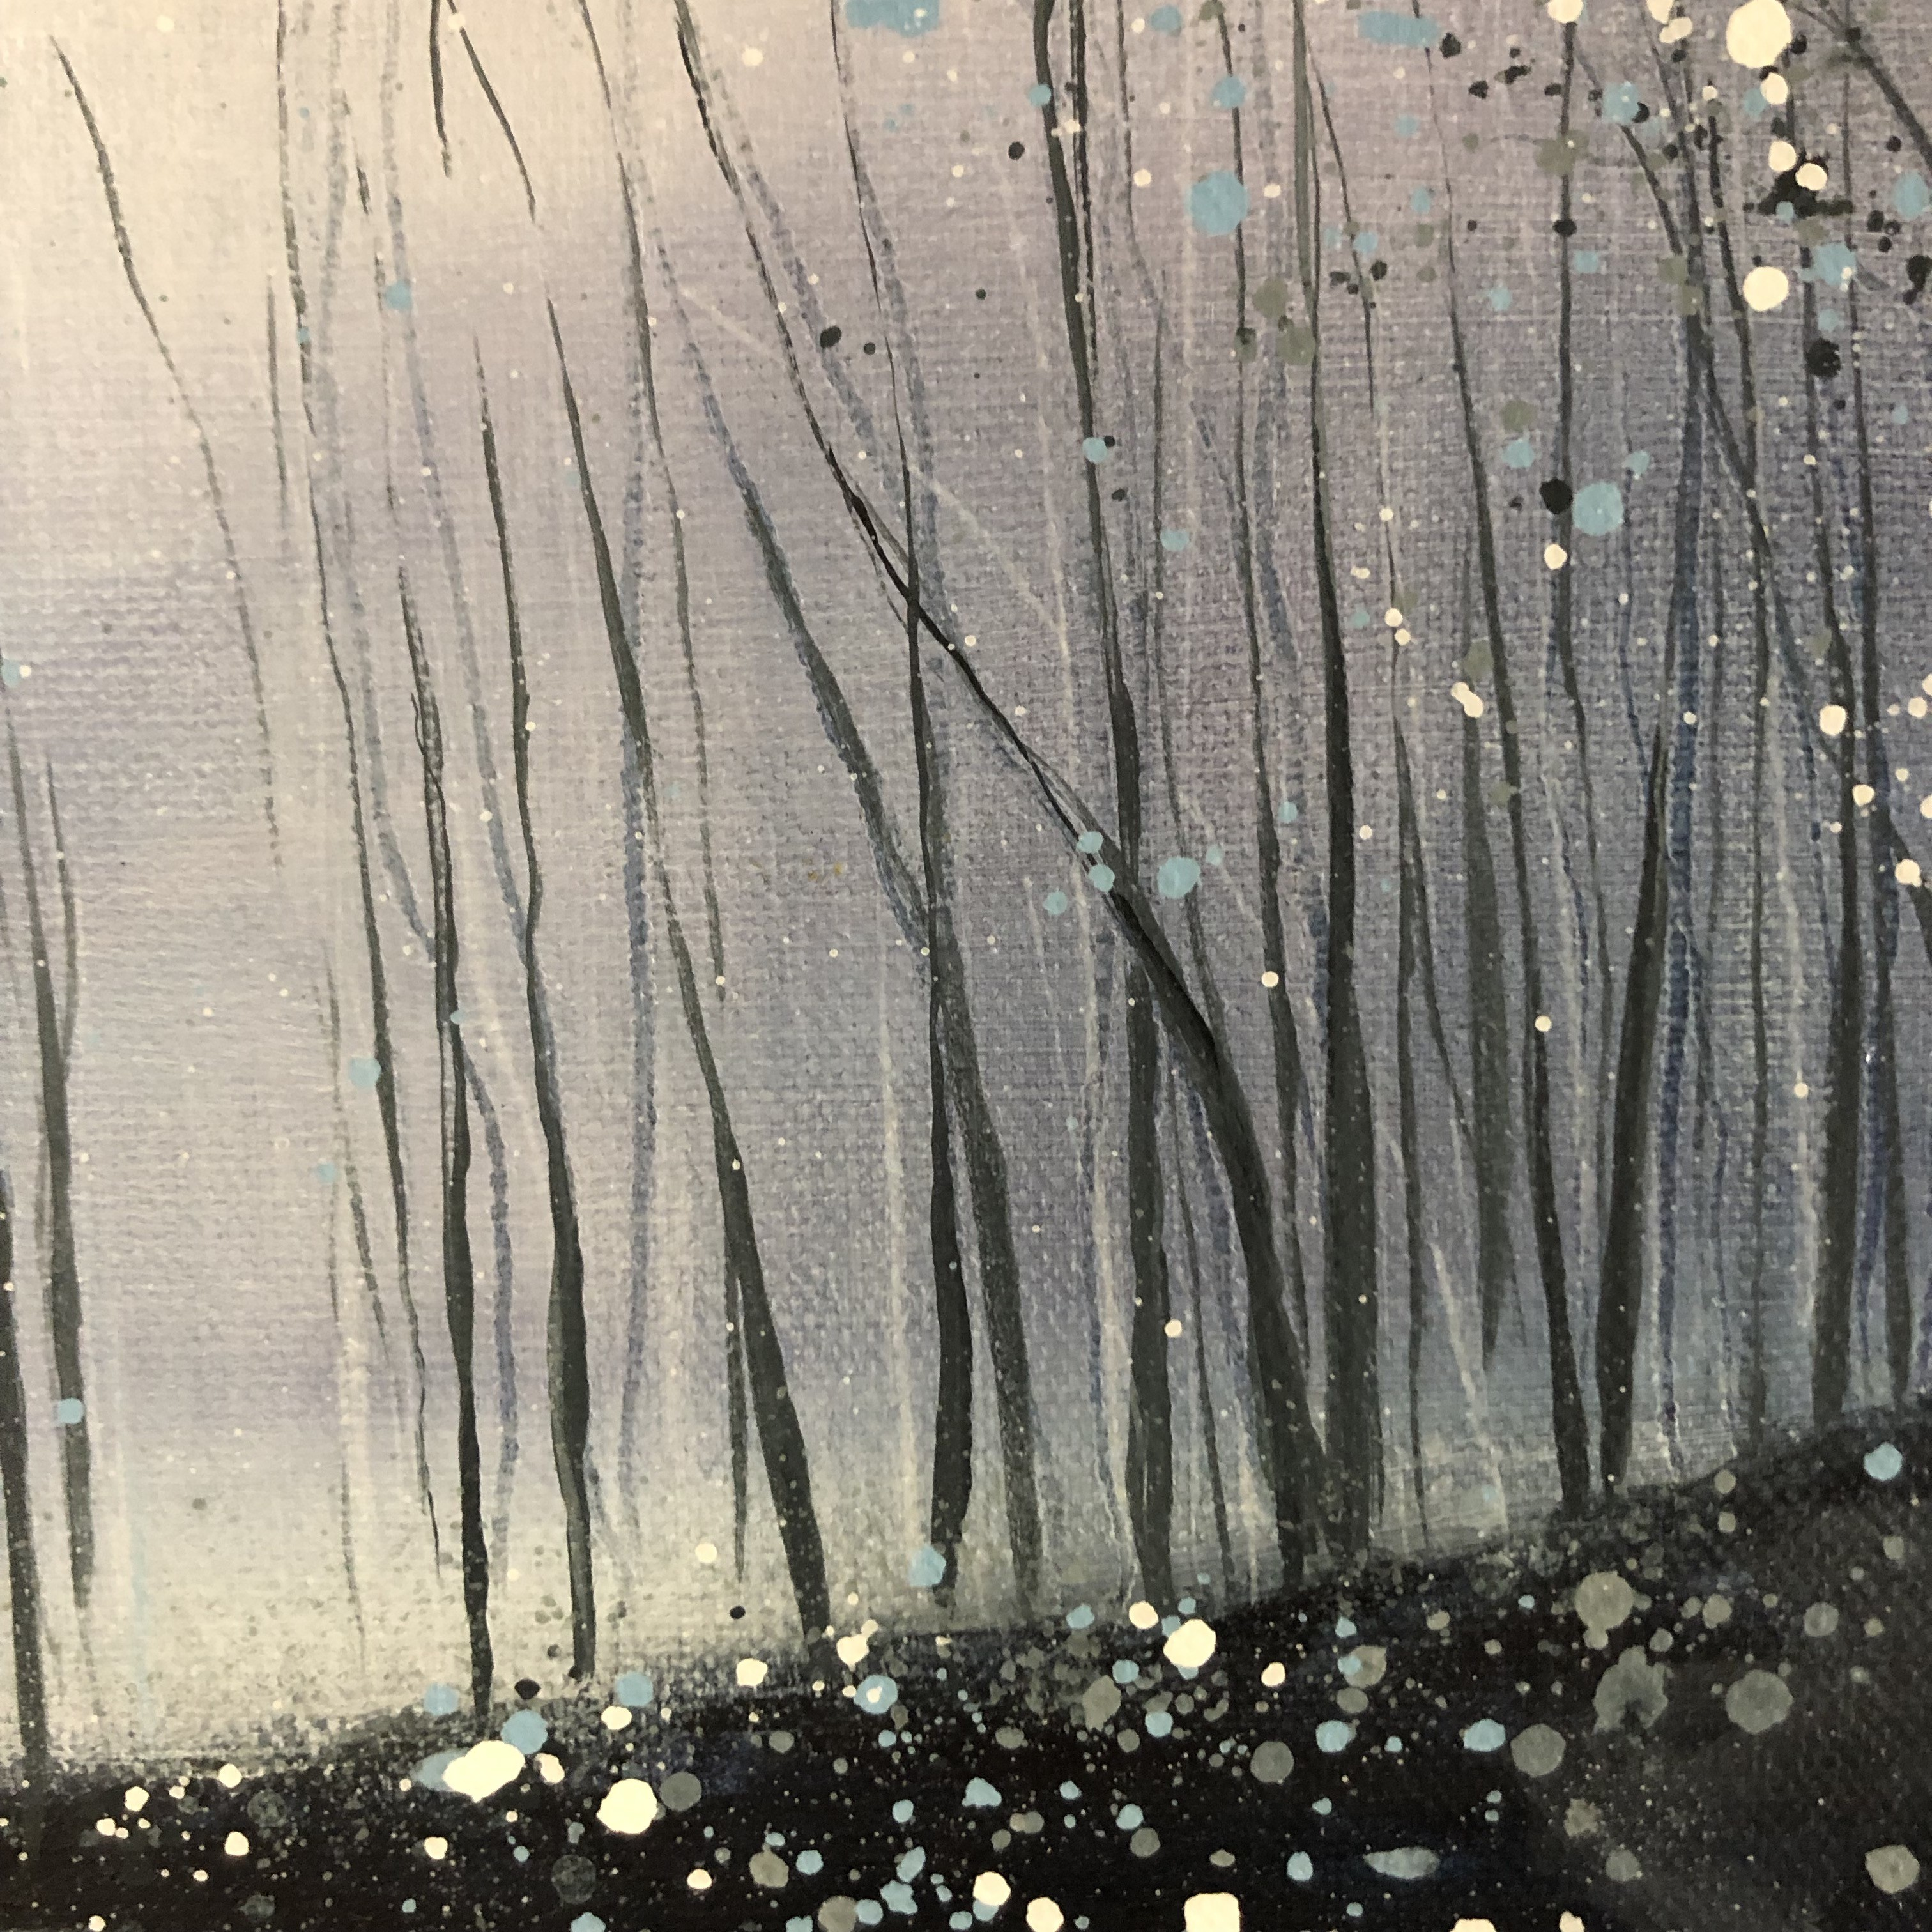 Silver Mist is an original seascape painting by Adele Riley. The grey and blue tones paired with the thin trees give the paintings a delicateness.